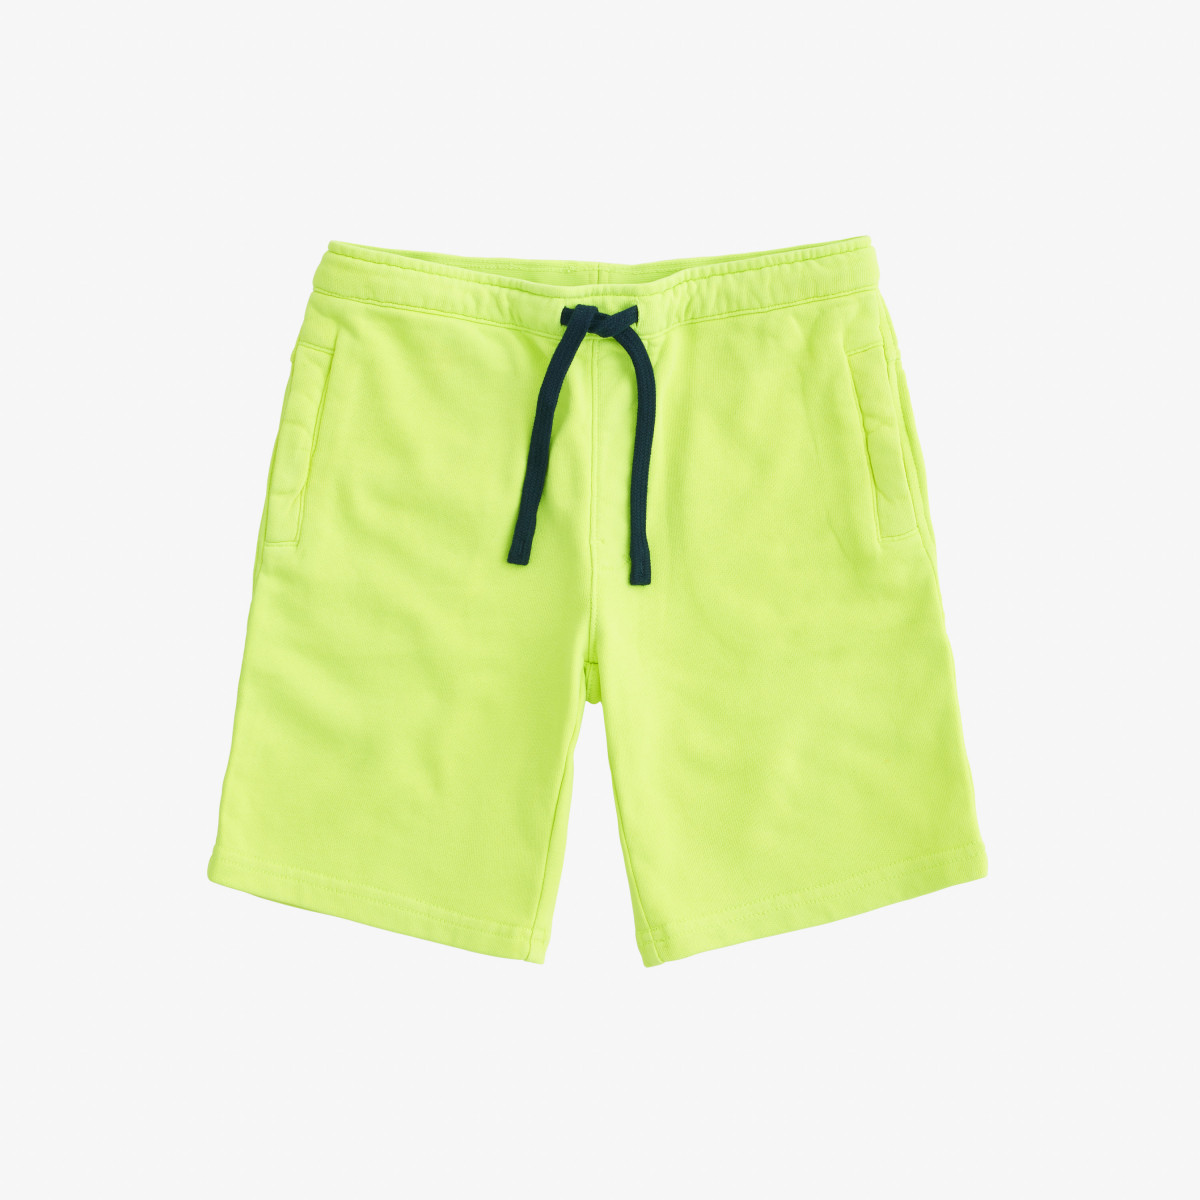 PANT SHORT COLD DYE COTT. FL. YELLOW FLUO